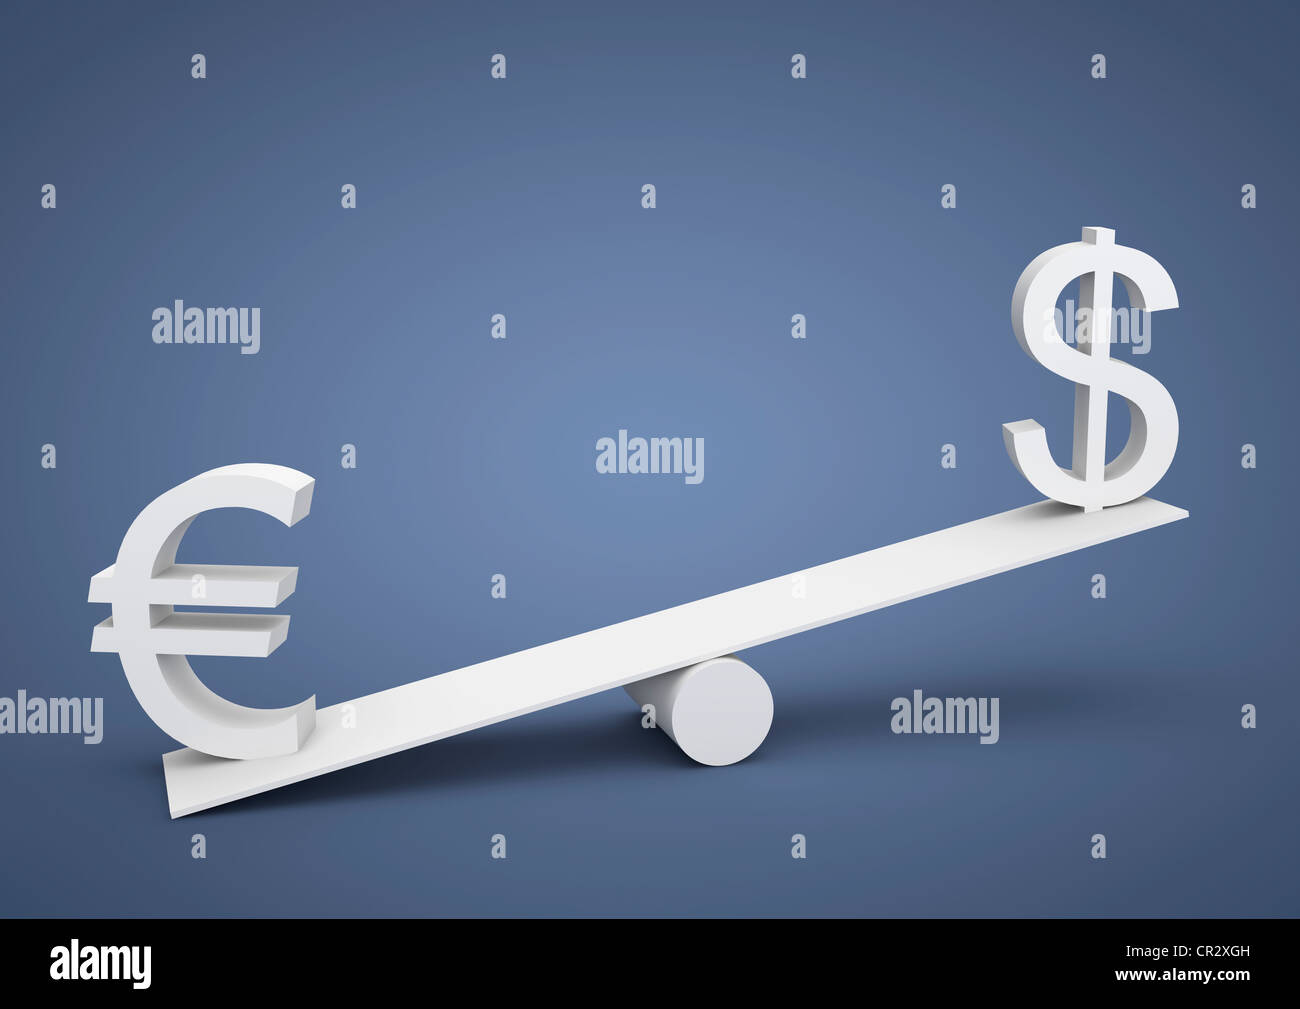 Seesaw out of balance, the euro is heavier than the U.S. dollar, currency, symbolic image for imbalance, dominance Stock Photo